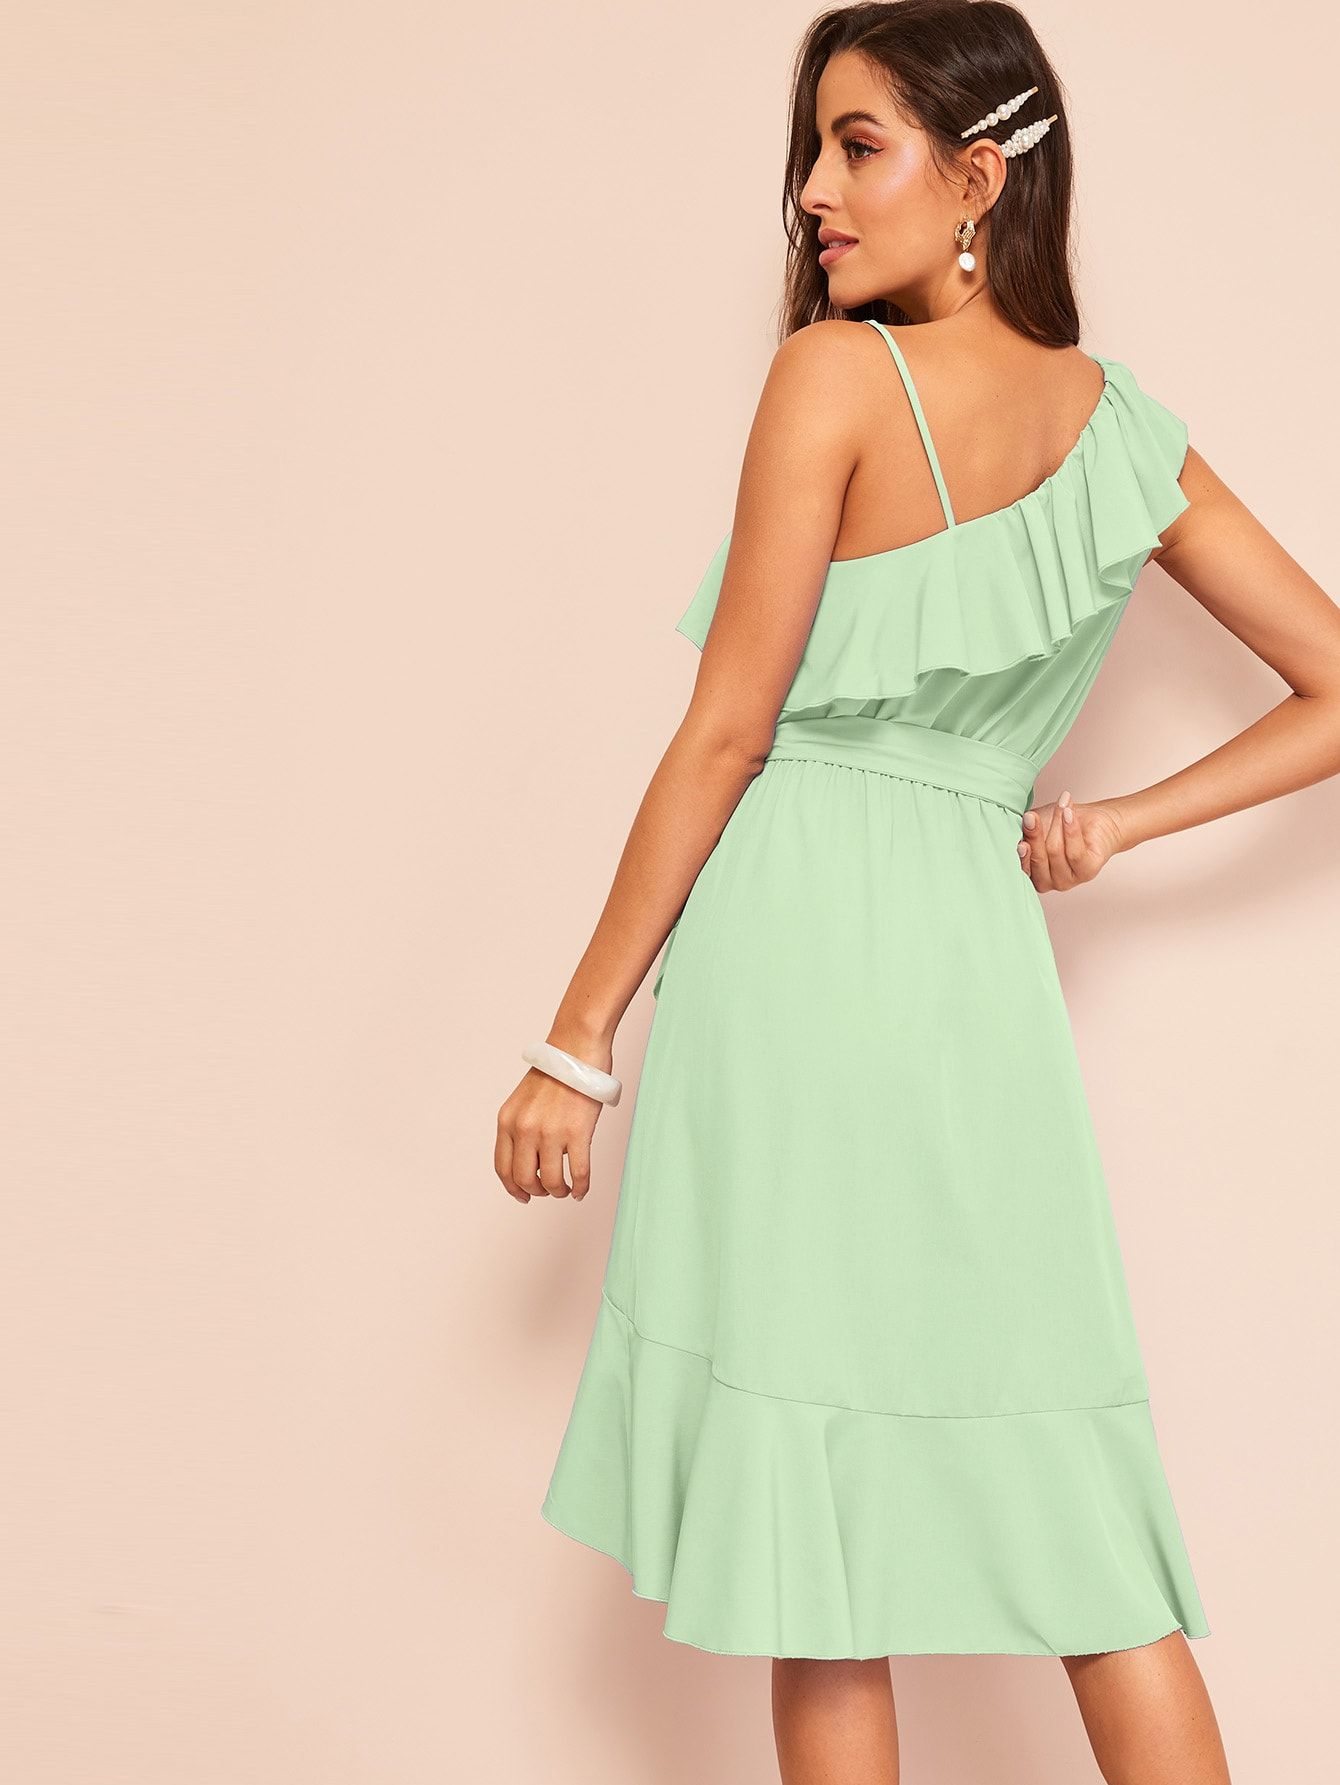 363bd02a768 Flounce Foldover Belted Dress With Wrap Skirt  Ad